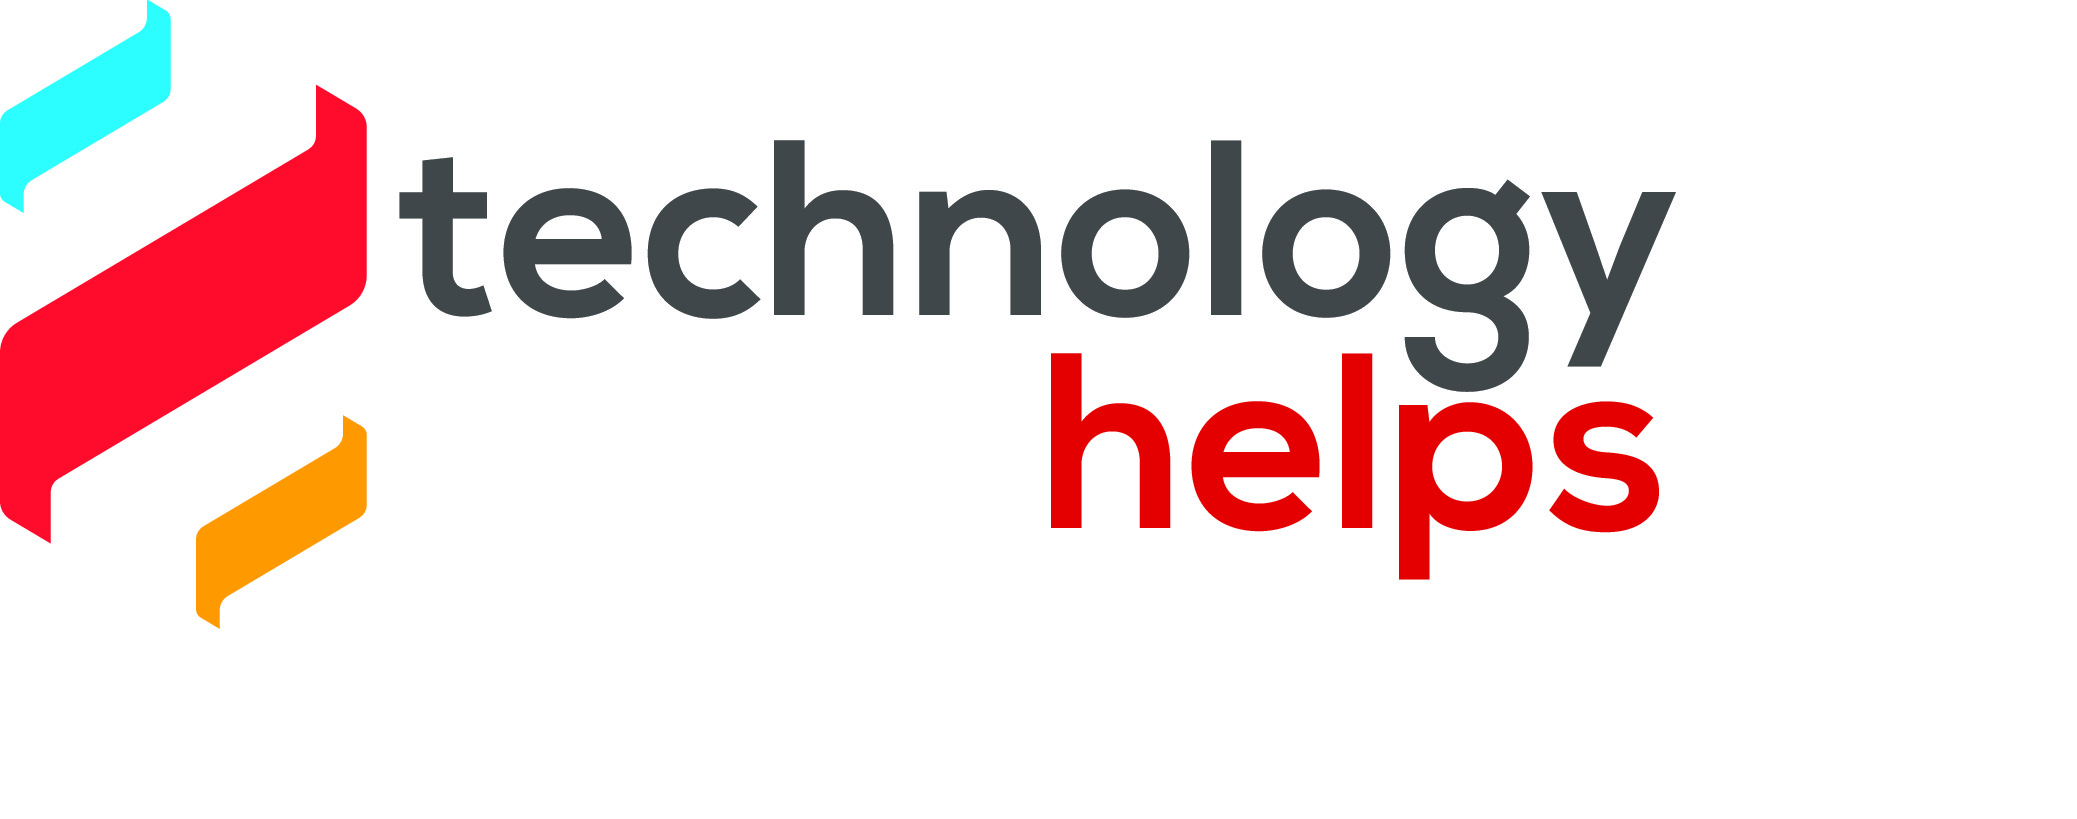 Technology helps logo